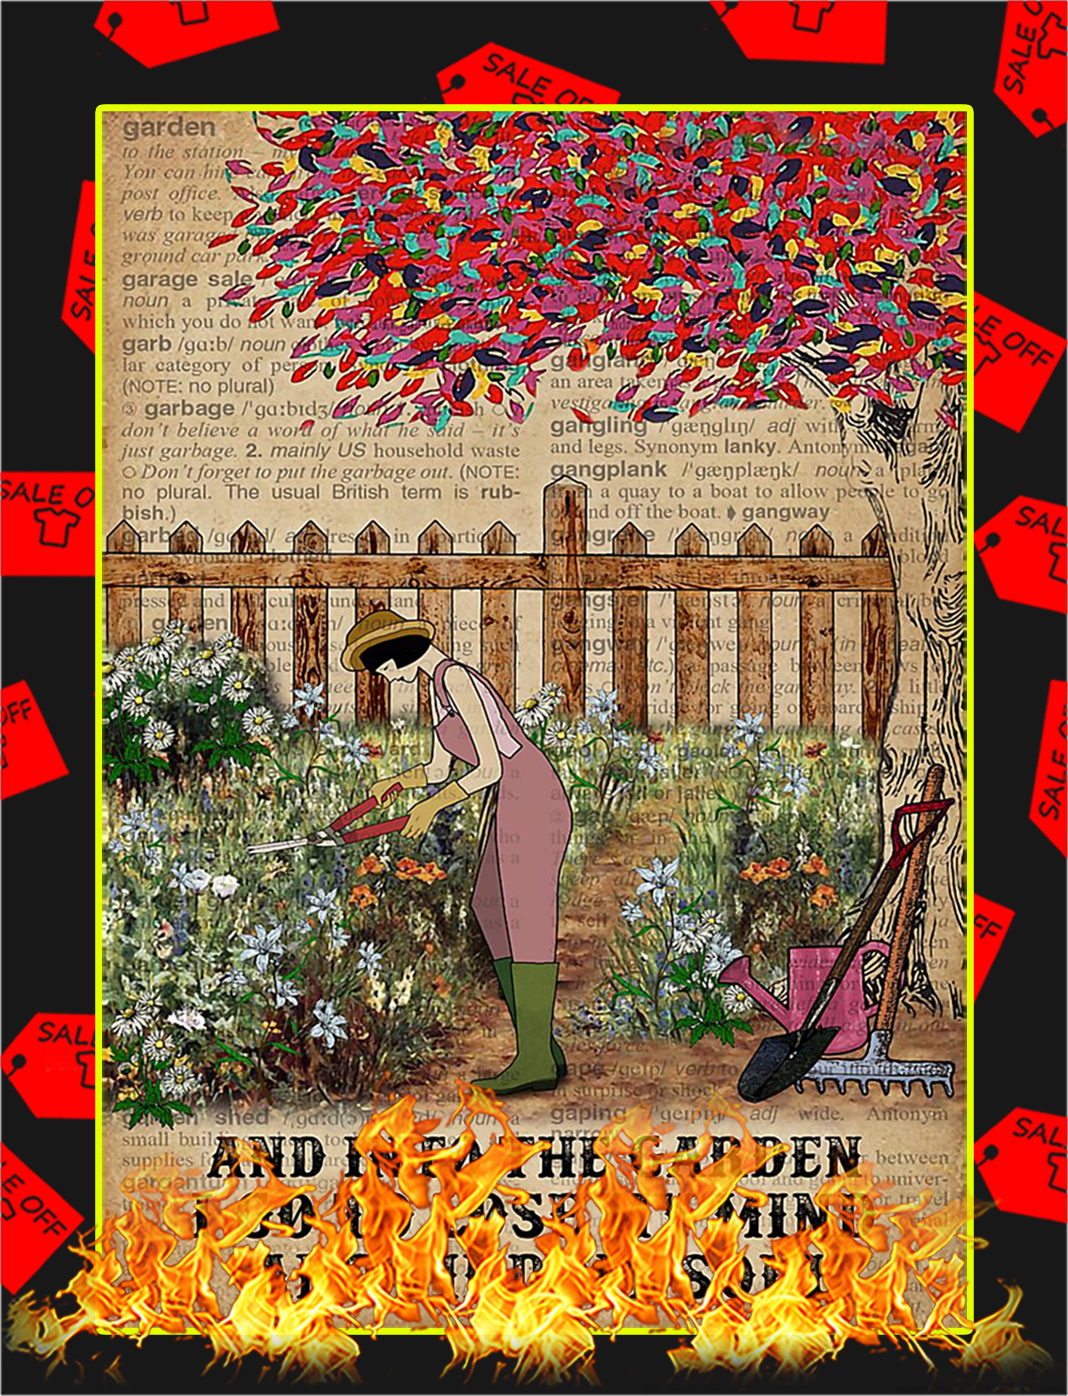 Dictionary girl And into the garden I go to lose my mind poster - A2